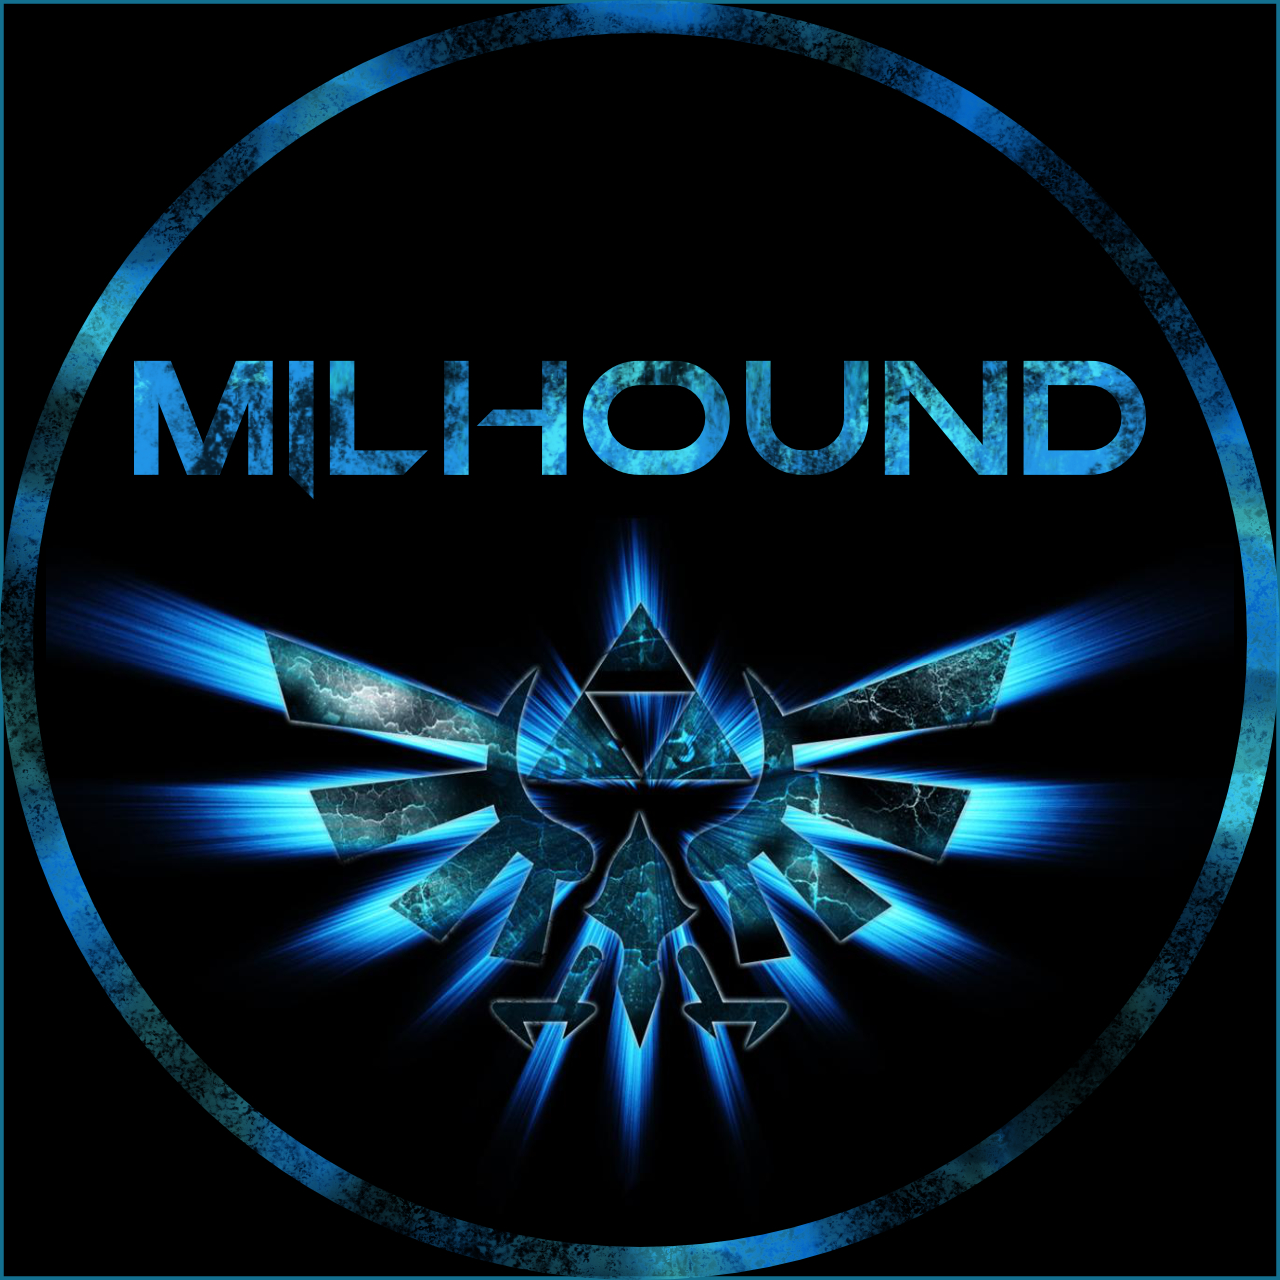 Milhound